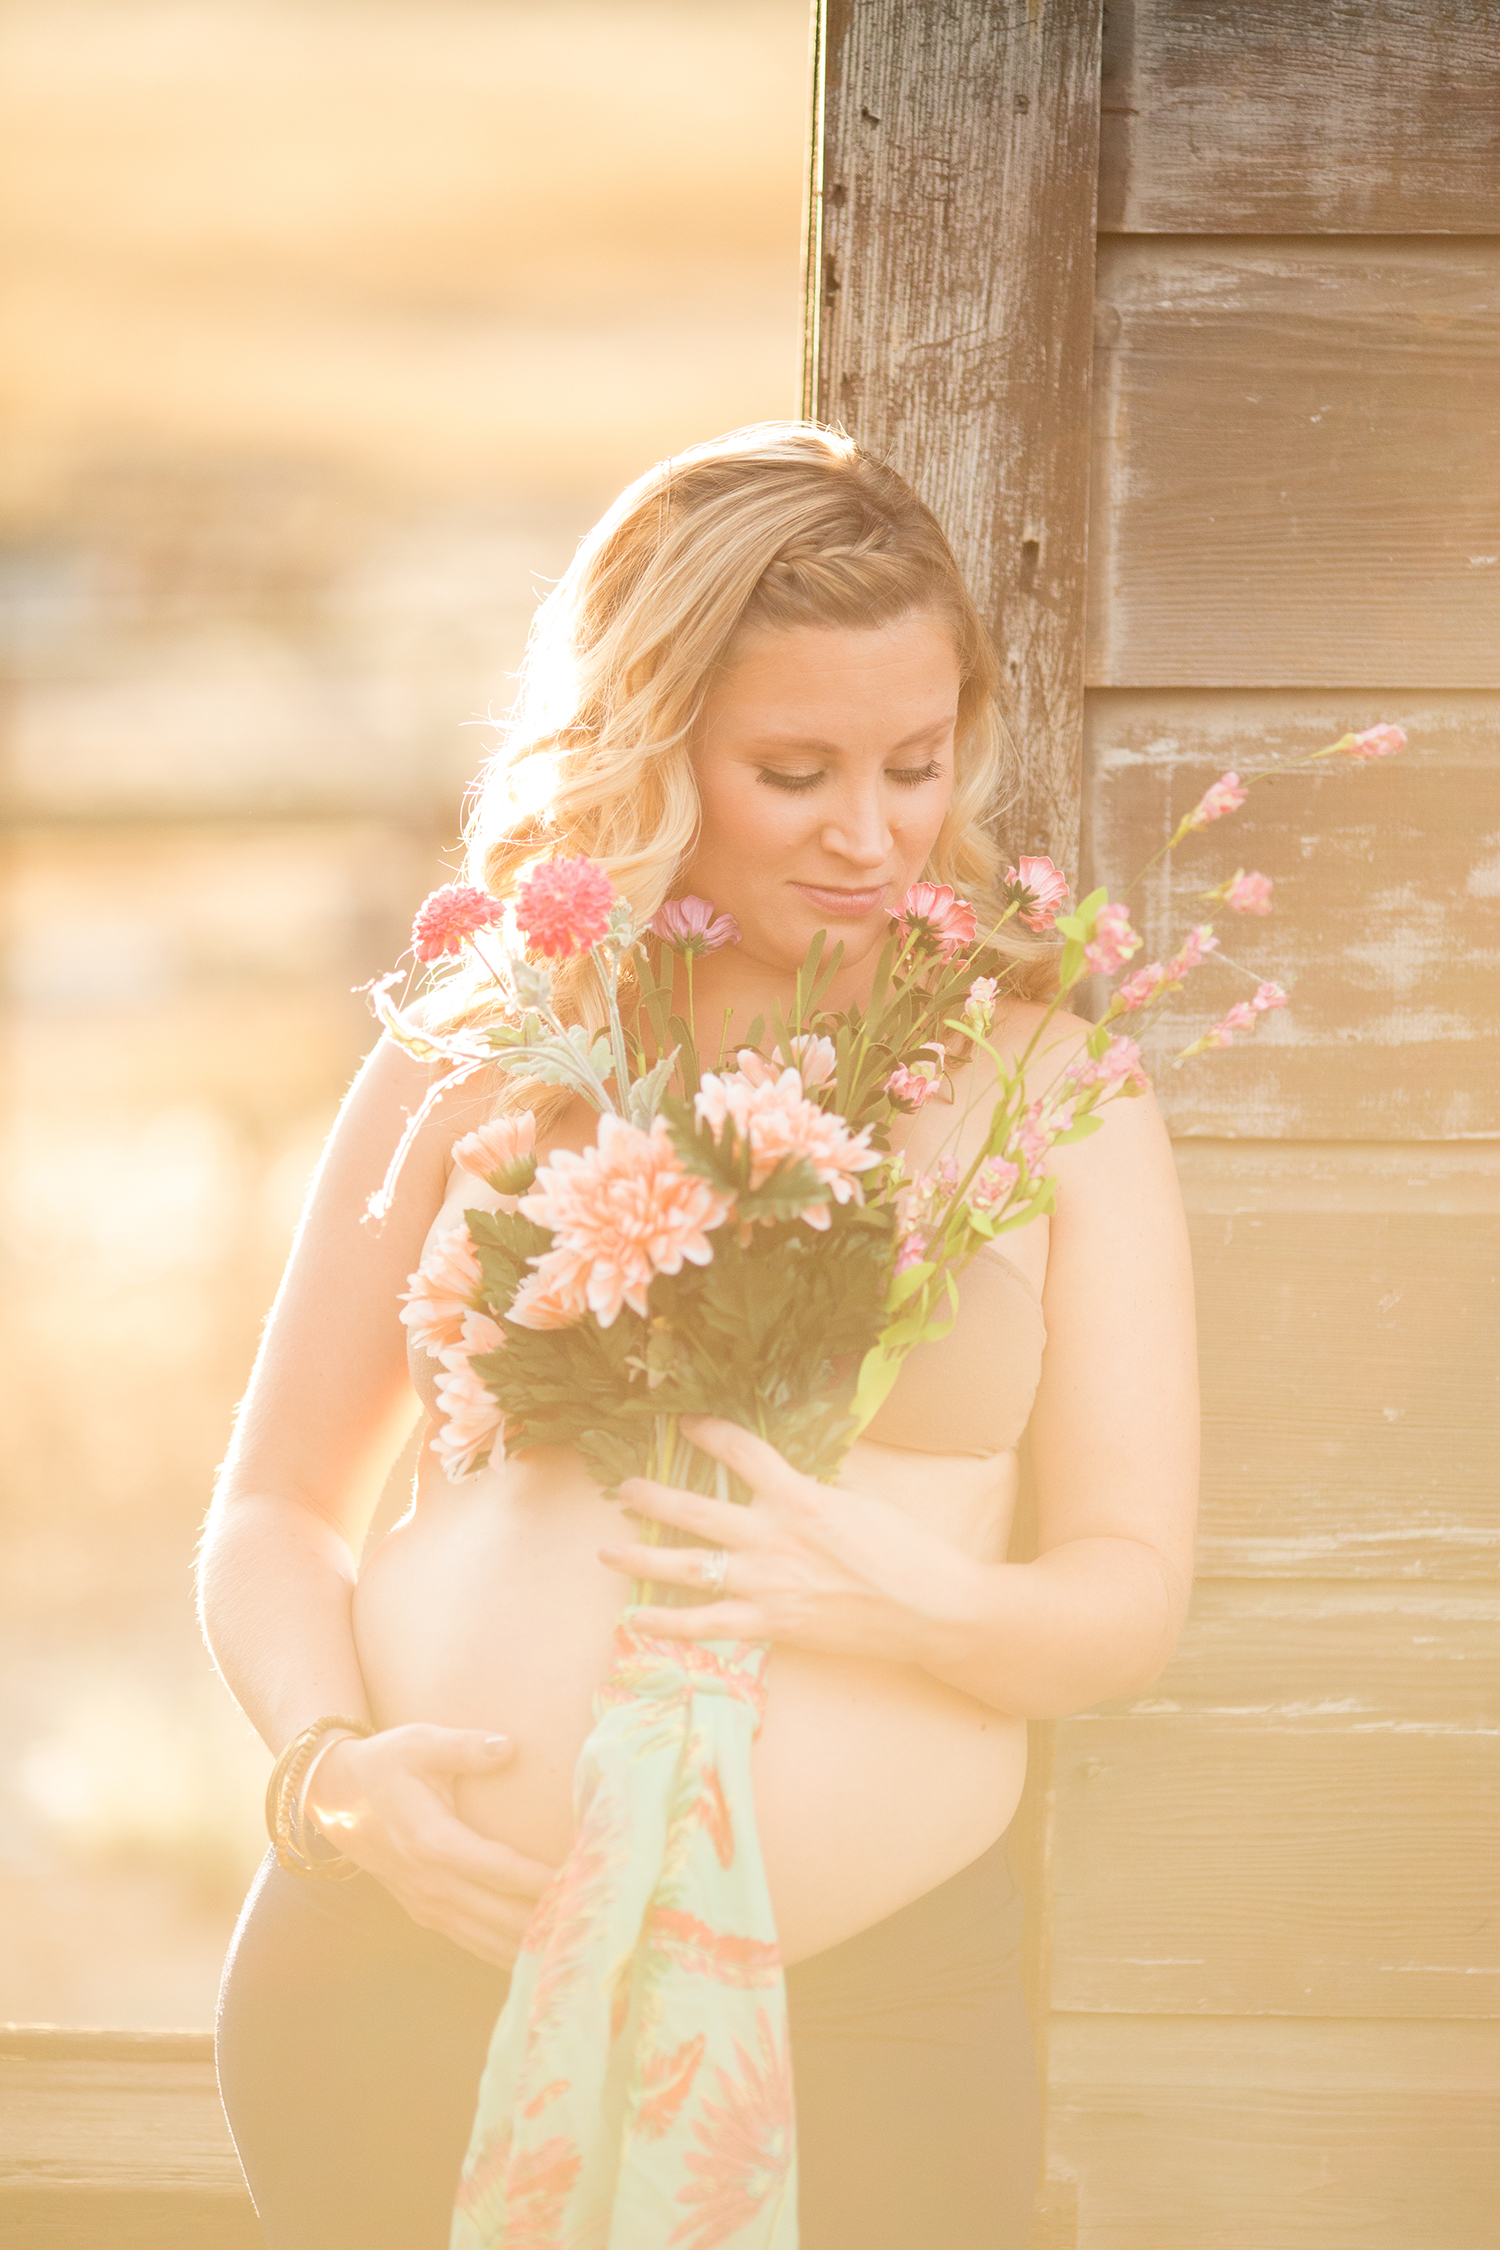 Dena_Rooney_Maternity_Portraits_020.jpg